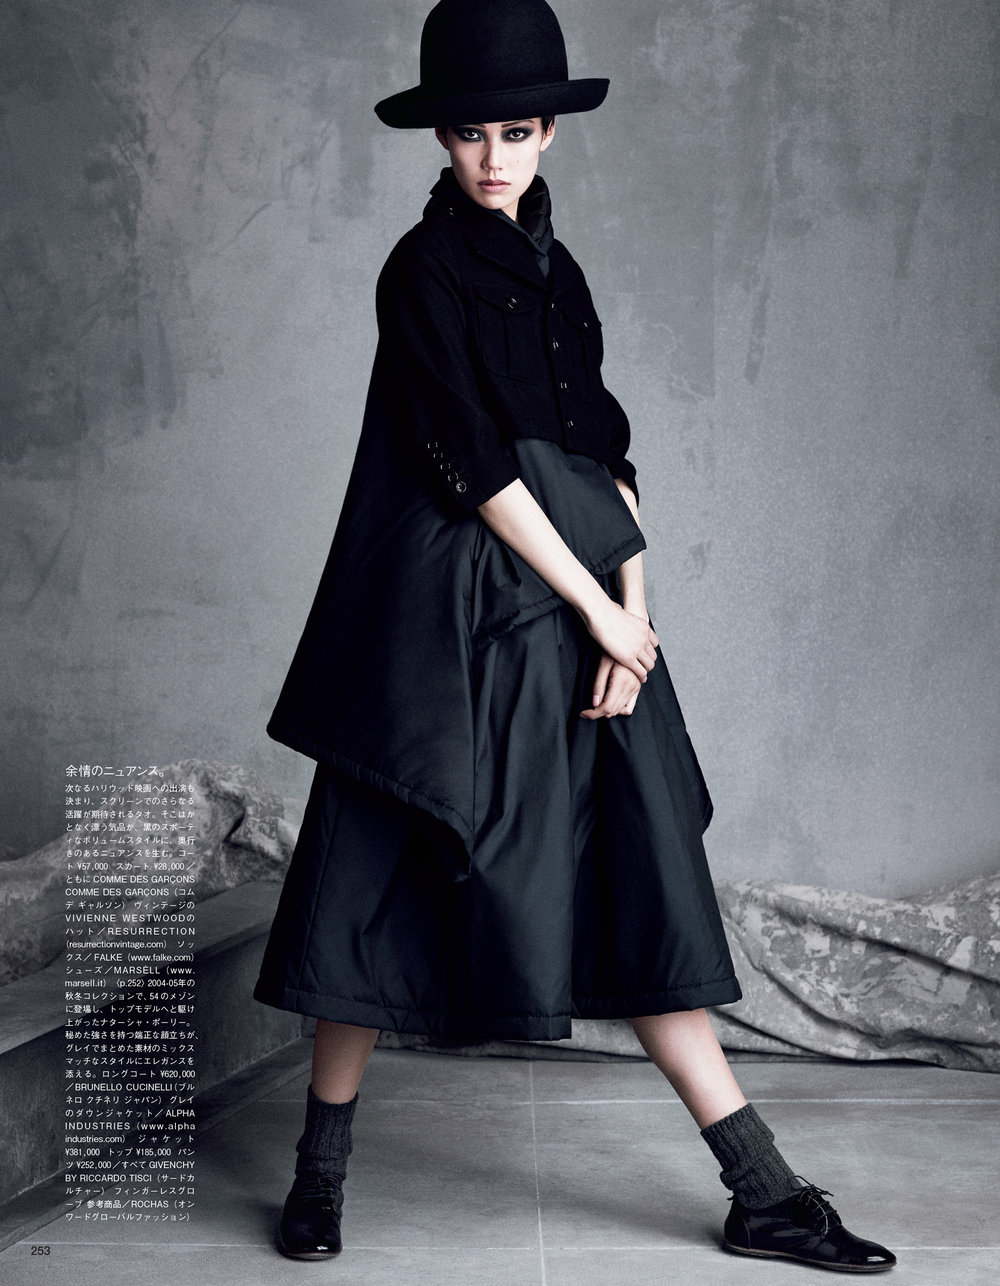 Giovanna-Battaglia-The-Icons-Of-Perfections-Vogue-Japan-15th-Anniversary-Issue-Luigi-Iango-V181_253_200-15.jpg